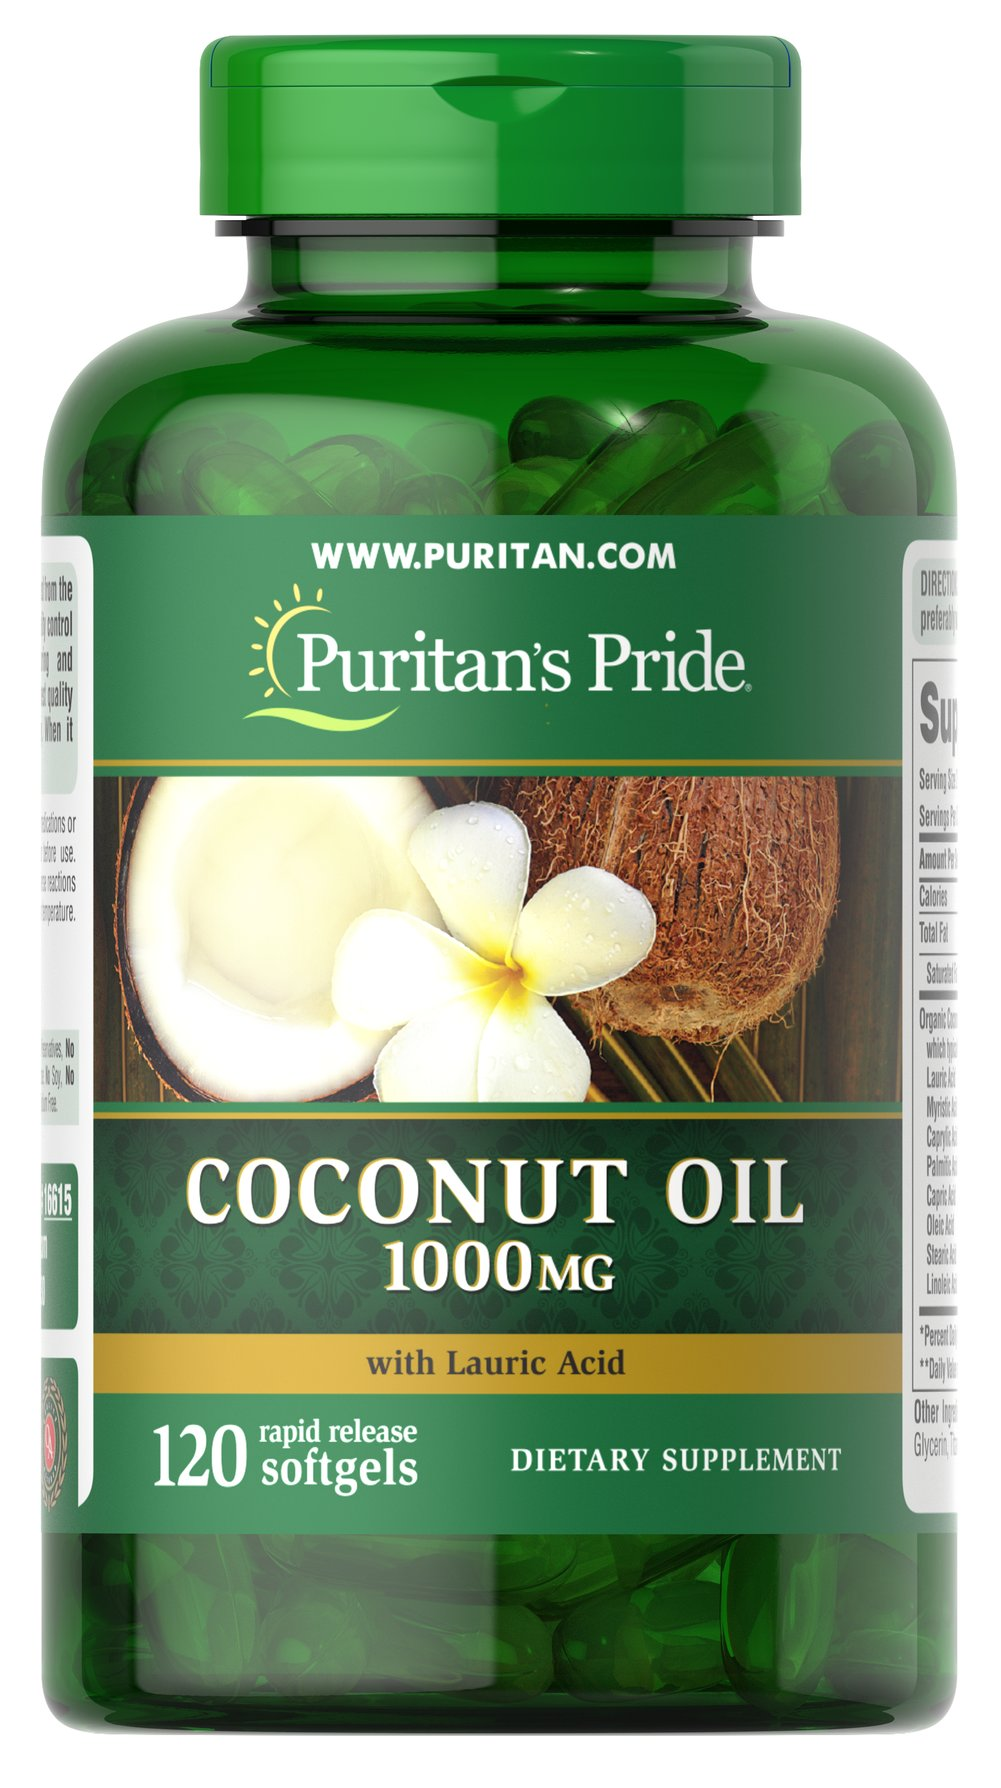 Coconut Oil 1000 mg  120 Rapid Release Softgels 1000 mg $16.99